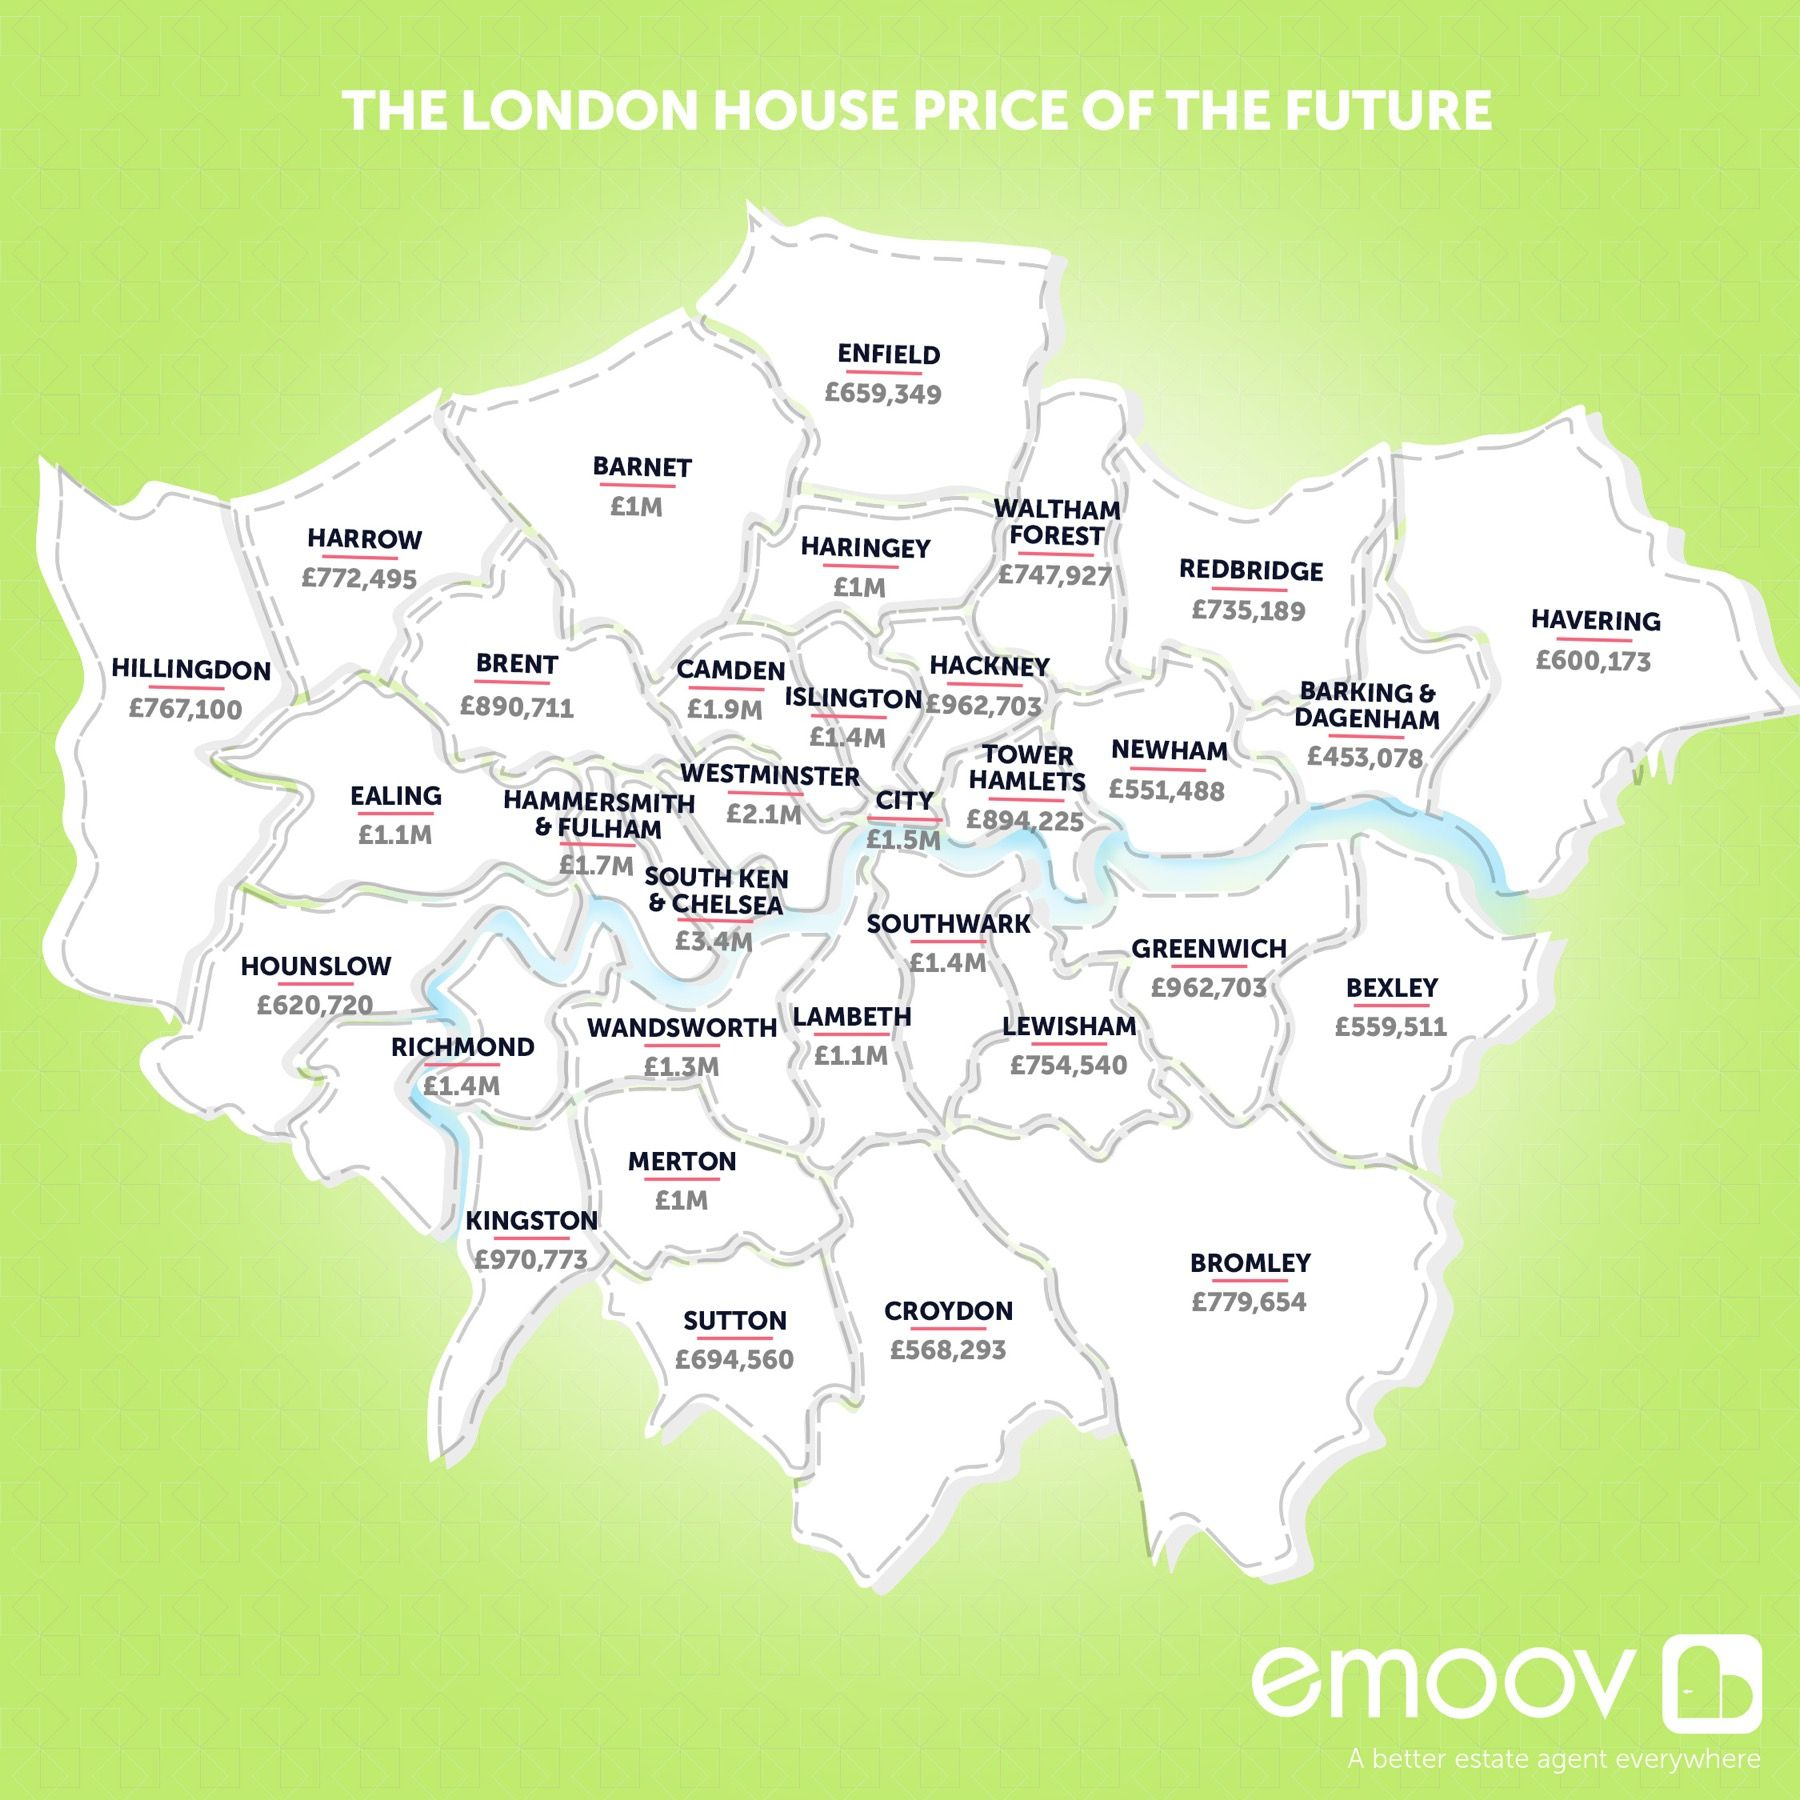 The London House Price of the Future: The cost of getting on the London ladder in 2030